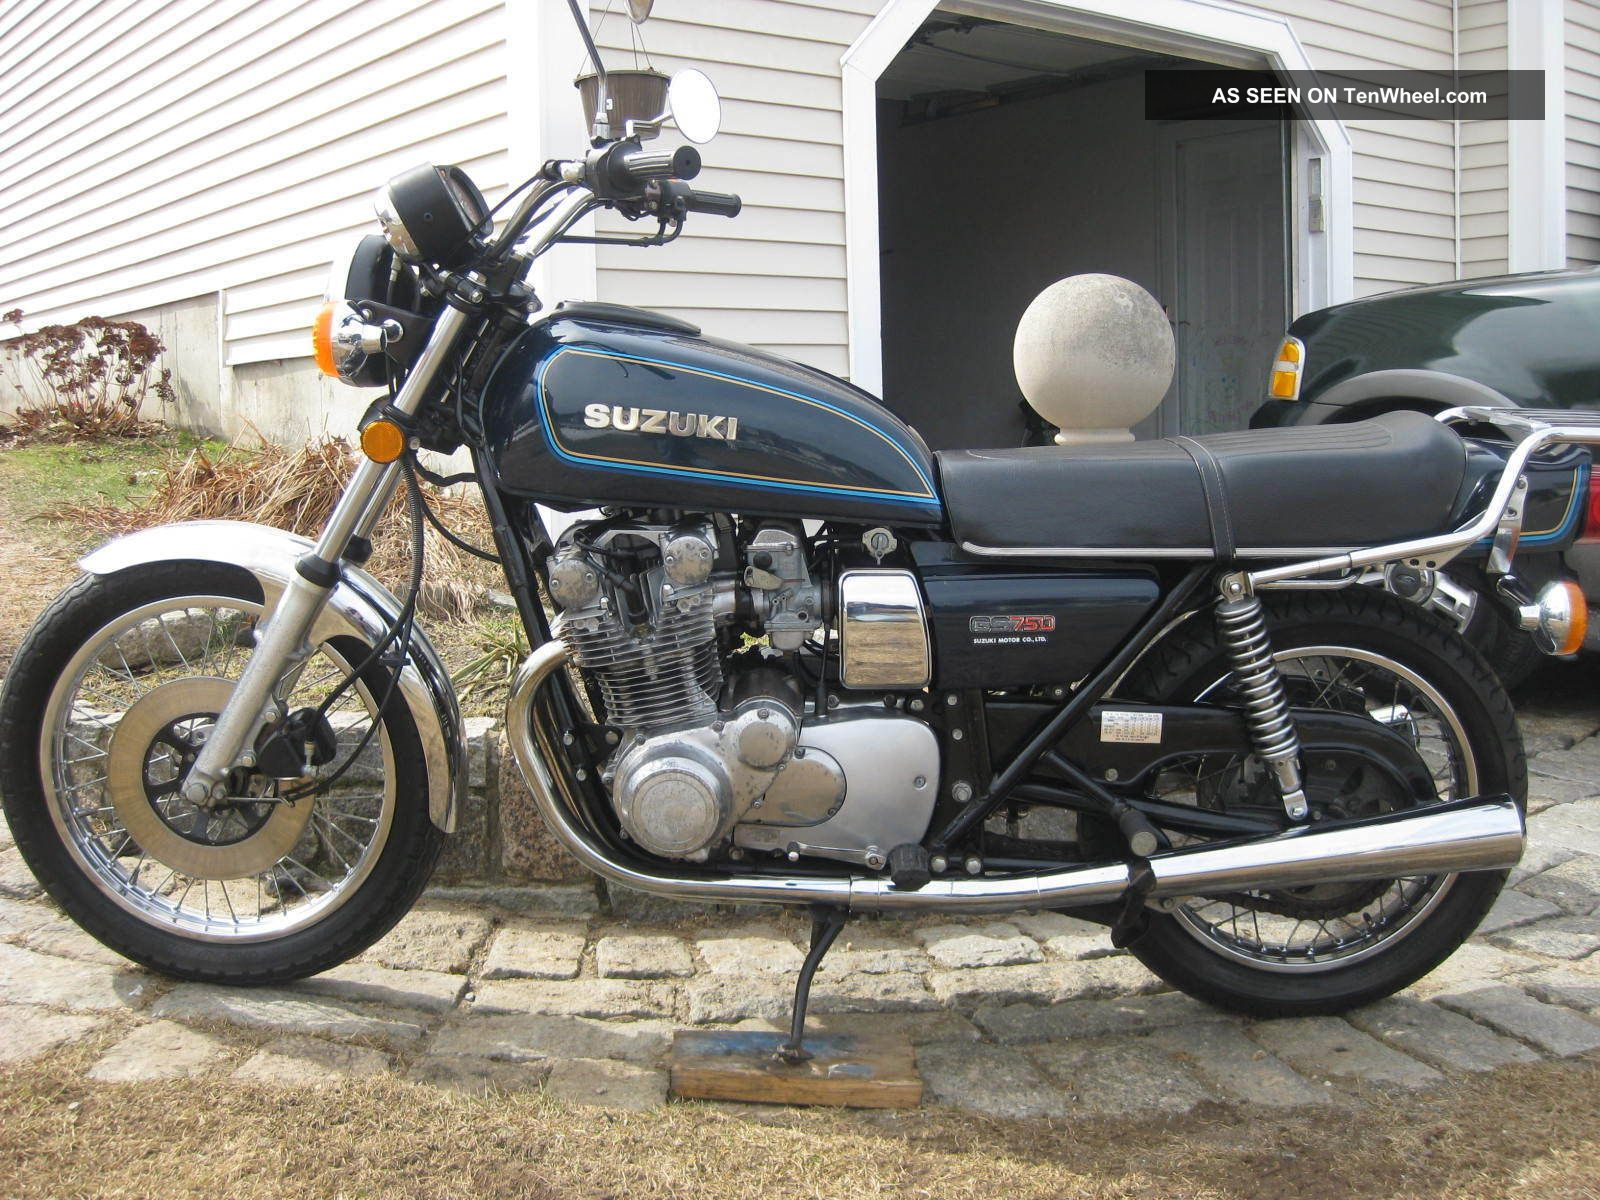 cb750 wiring diagram 1992 honda cb750 engine specs honda free engine image for